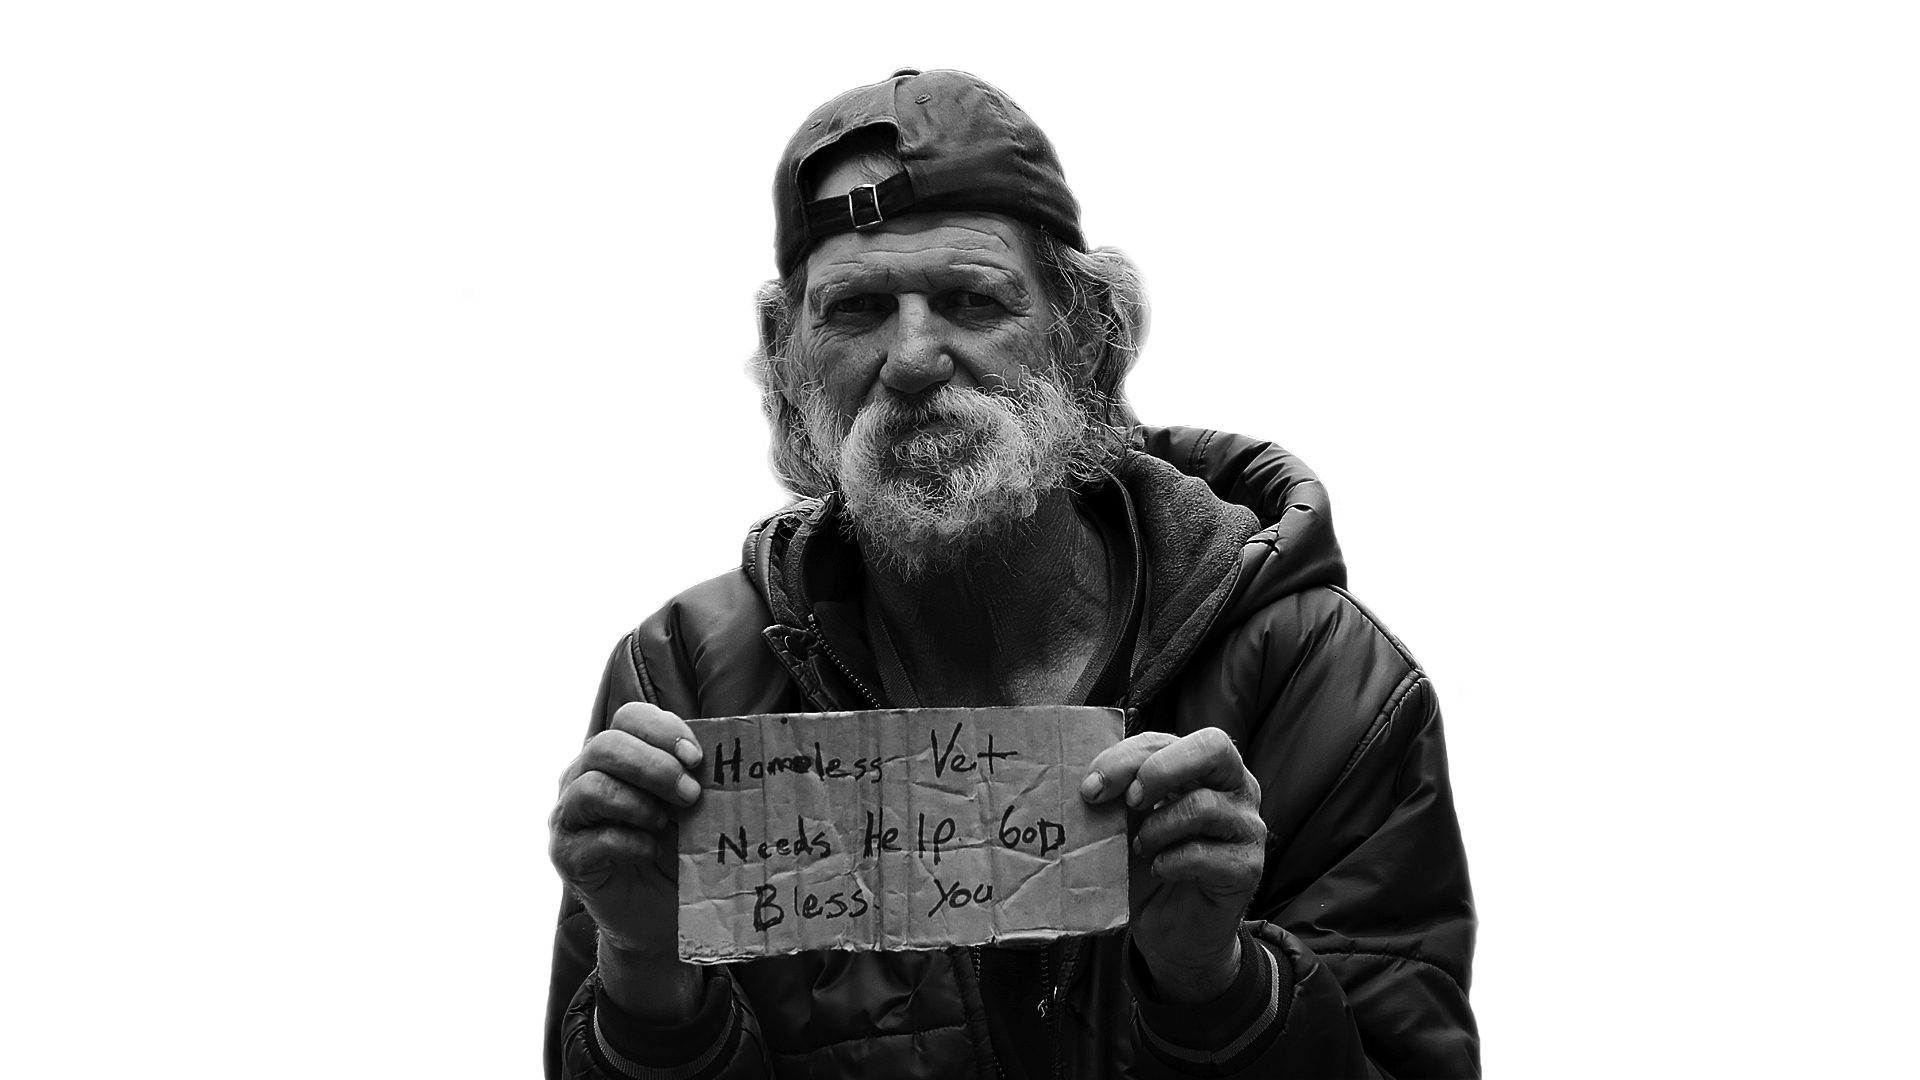 U.S. Homeless Veterans